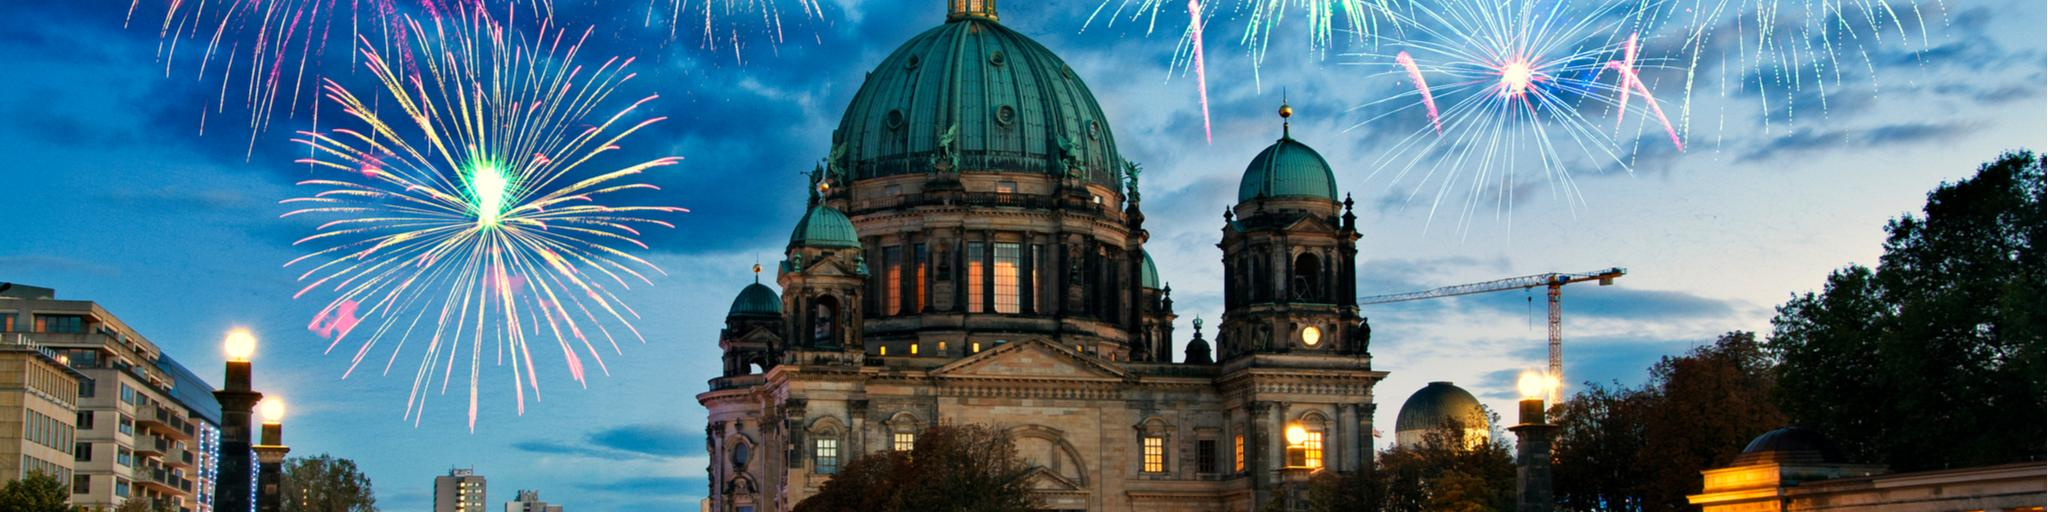 Fireworks over Berliner Dom cathedral in Berlin, Germany